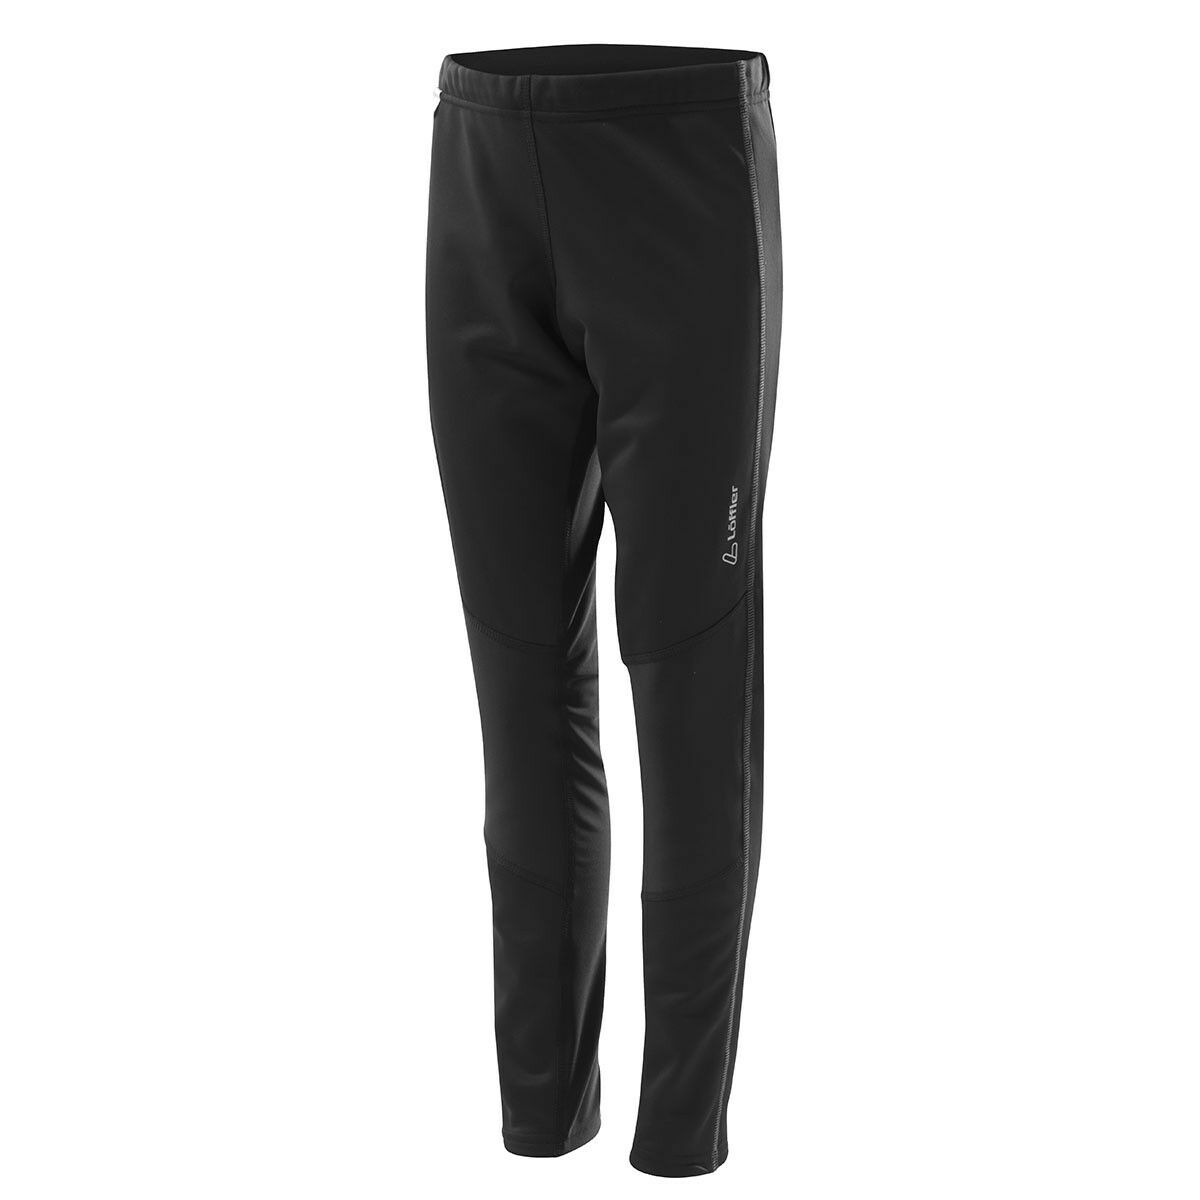 Löffler Tights lang WS Softshell warm Kinder Langlaufhose black